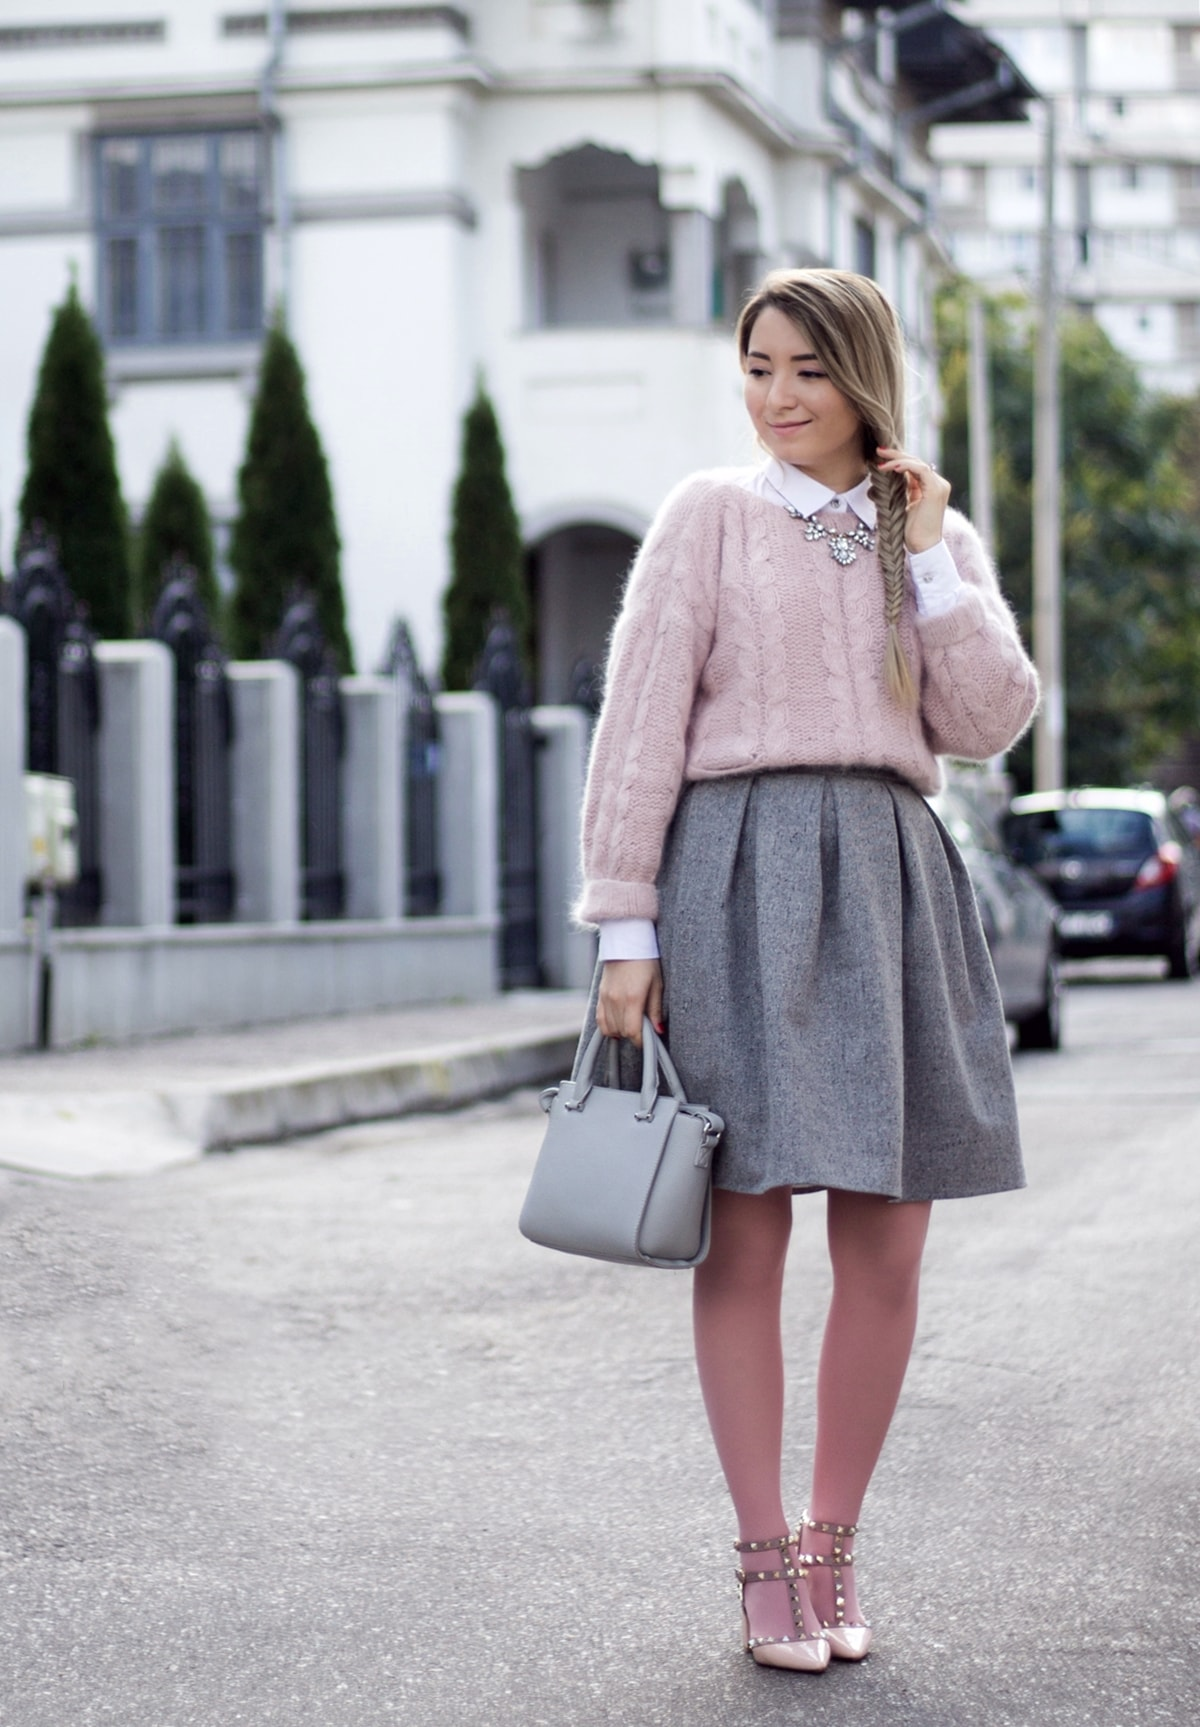 Street style: grey pleated skirt, pink tights, soft pink sweater, autumn pastel look, andreea ristea, fashion blogger